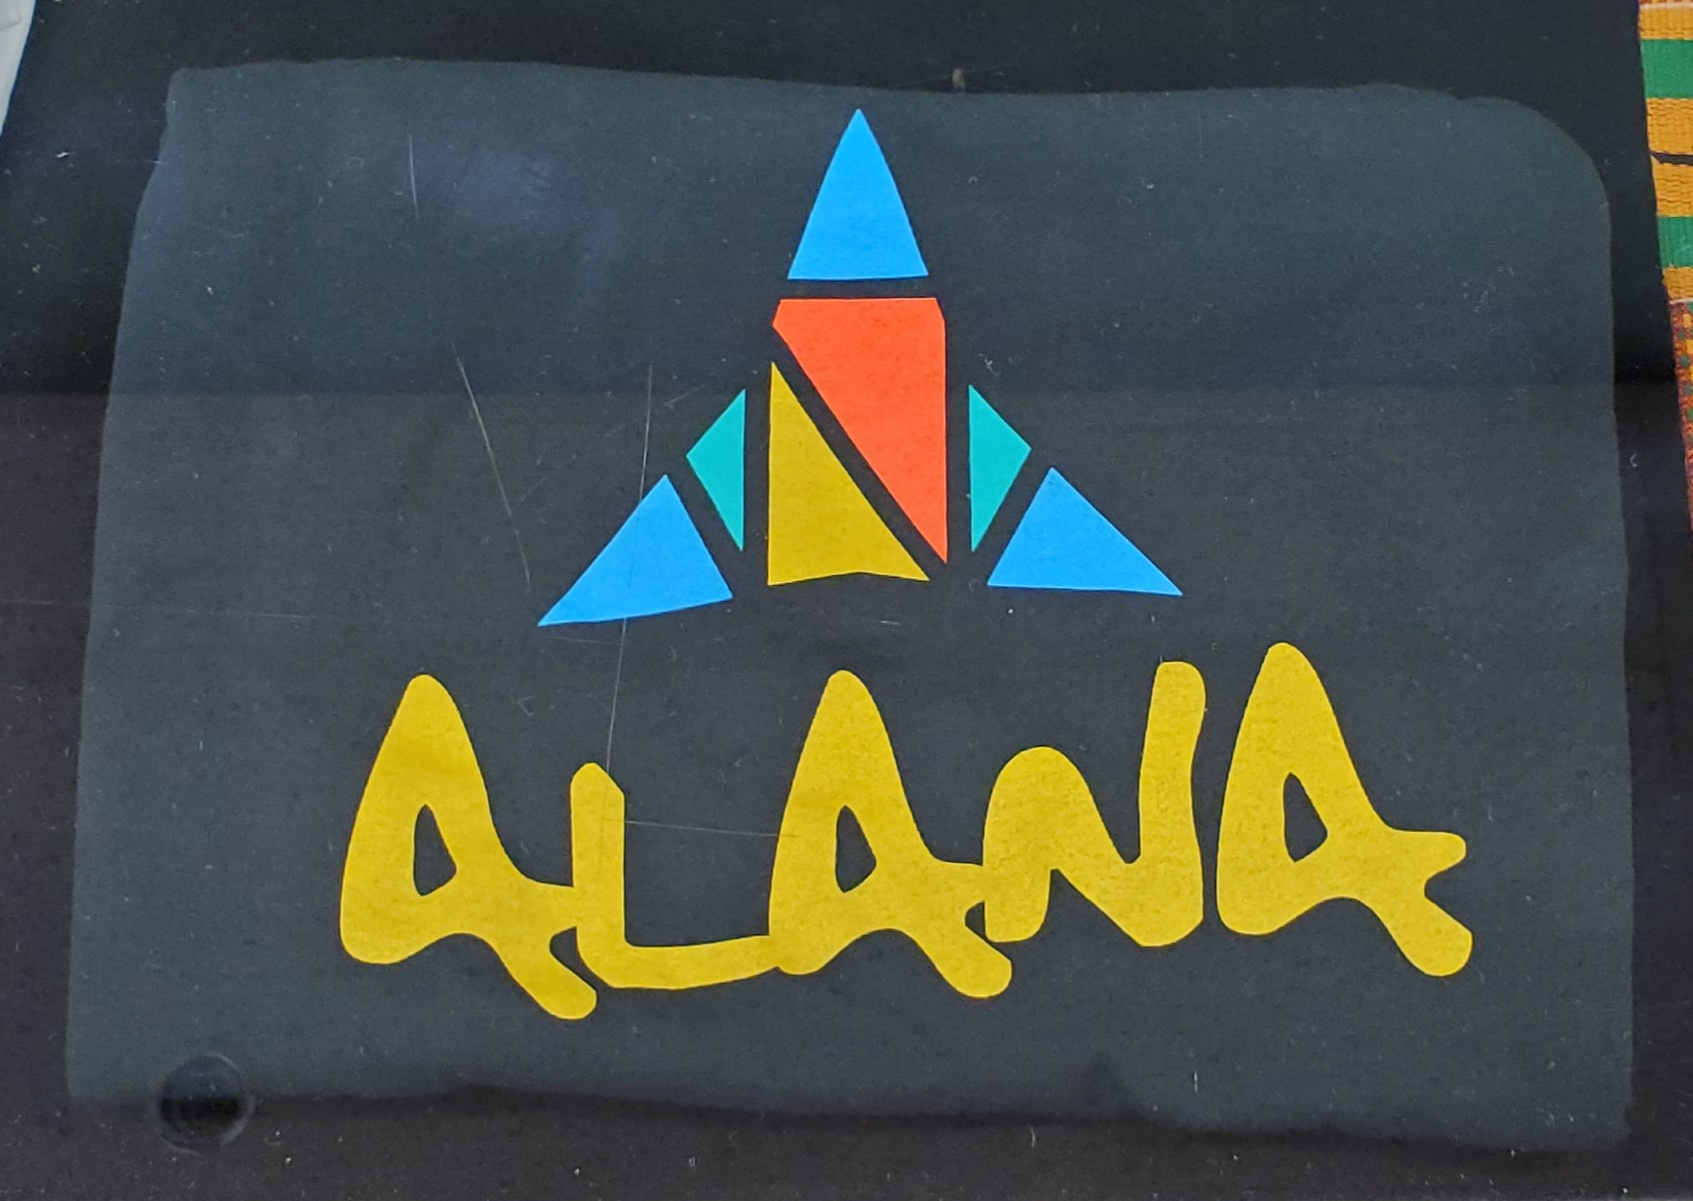 ALANA (stands for African, Latin, Asian, Native, Allies) t-shirt with the logo used for 2013-2019. The logo is triangular with a rectangle in the middle. The outer triangle parts are in blue and the two middle rectangular parts are in yellow and orange.